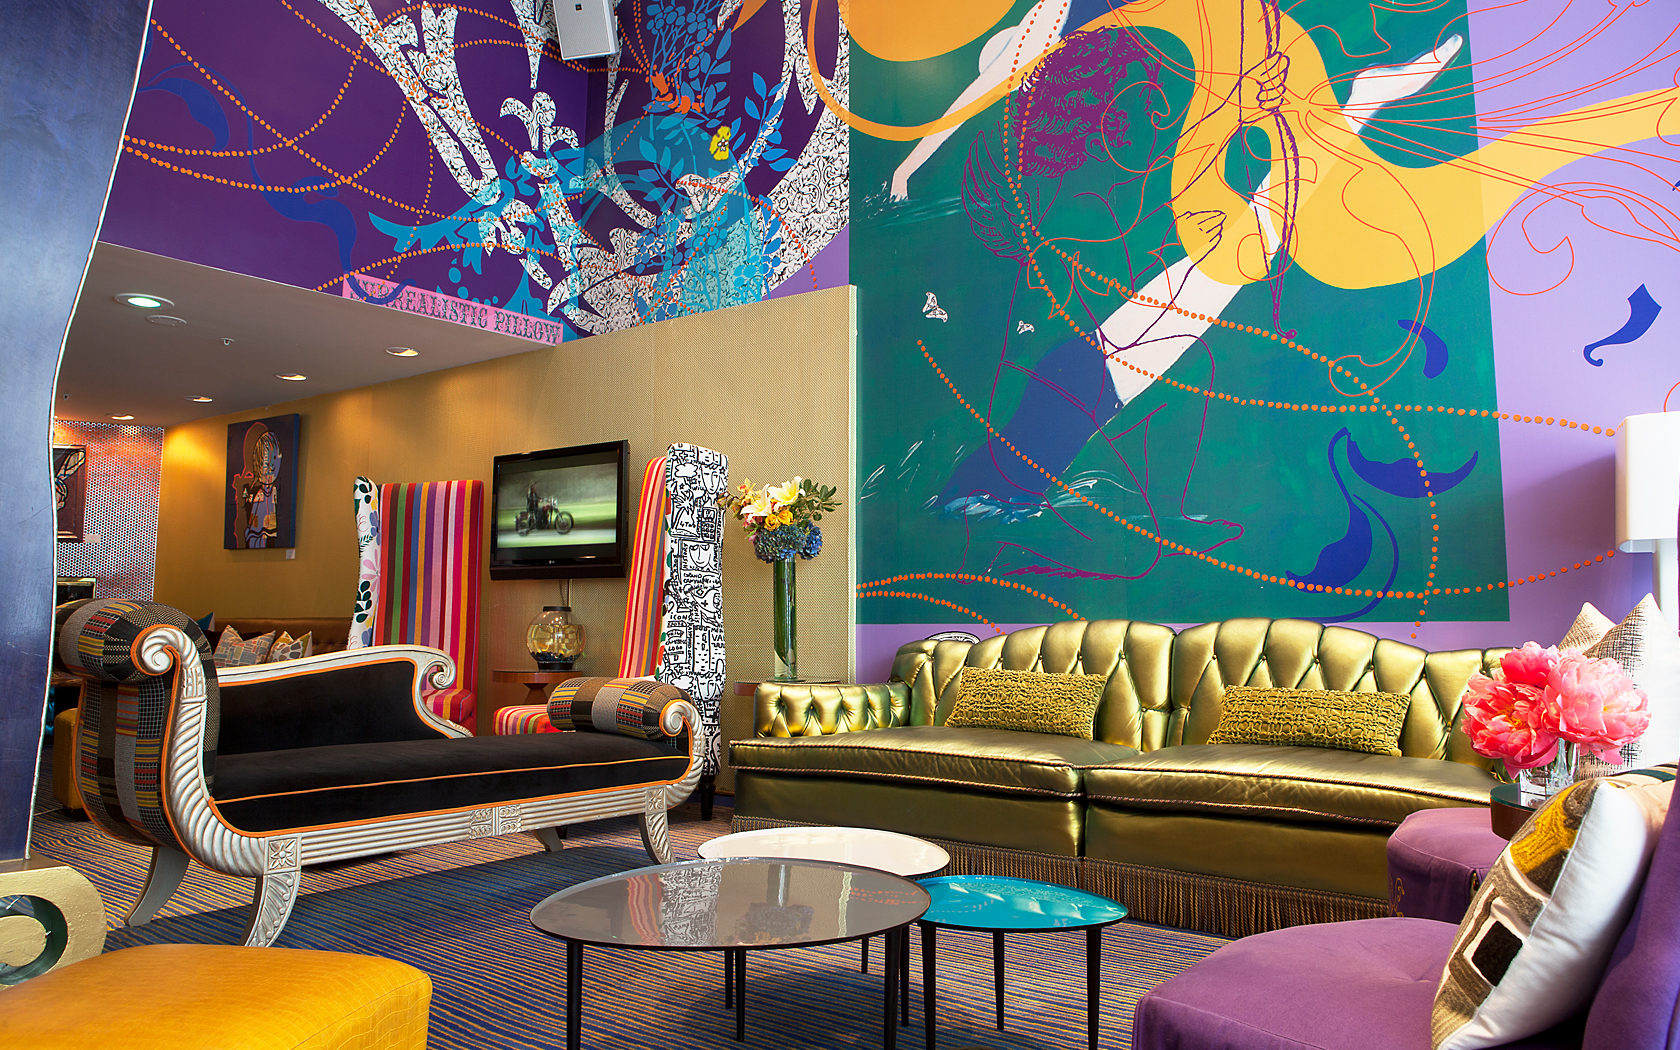 Lobby of triton with funky furniture and artworkHotel Triton San Francisco   Celebrity Inspired Hotel Near Union  . Contemporary Furniture Sfo. Home Design Ideas